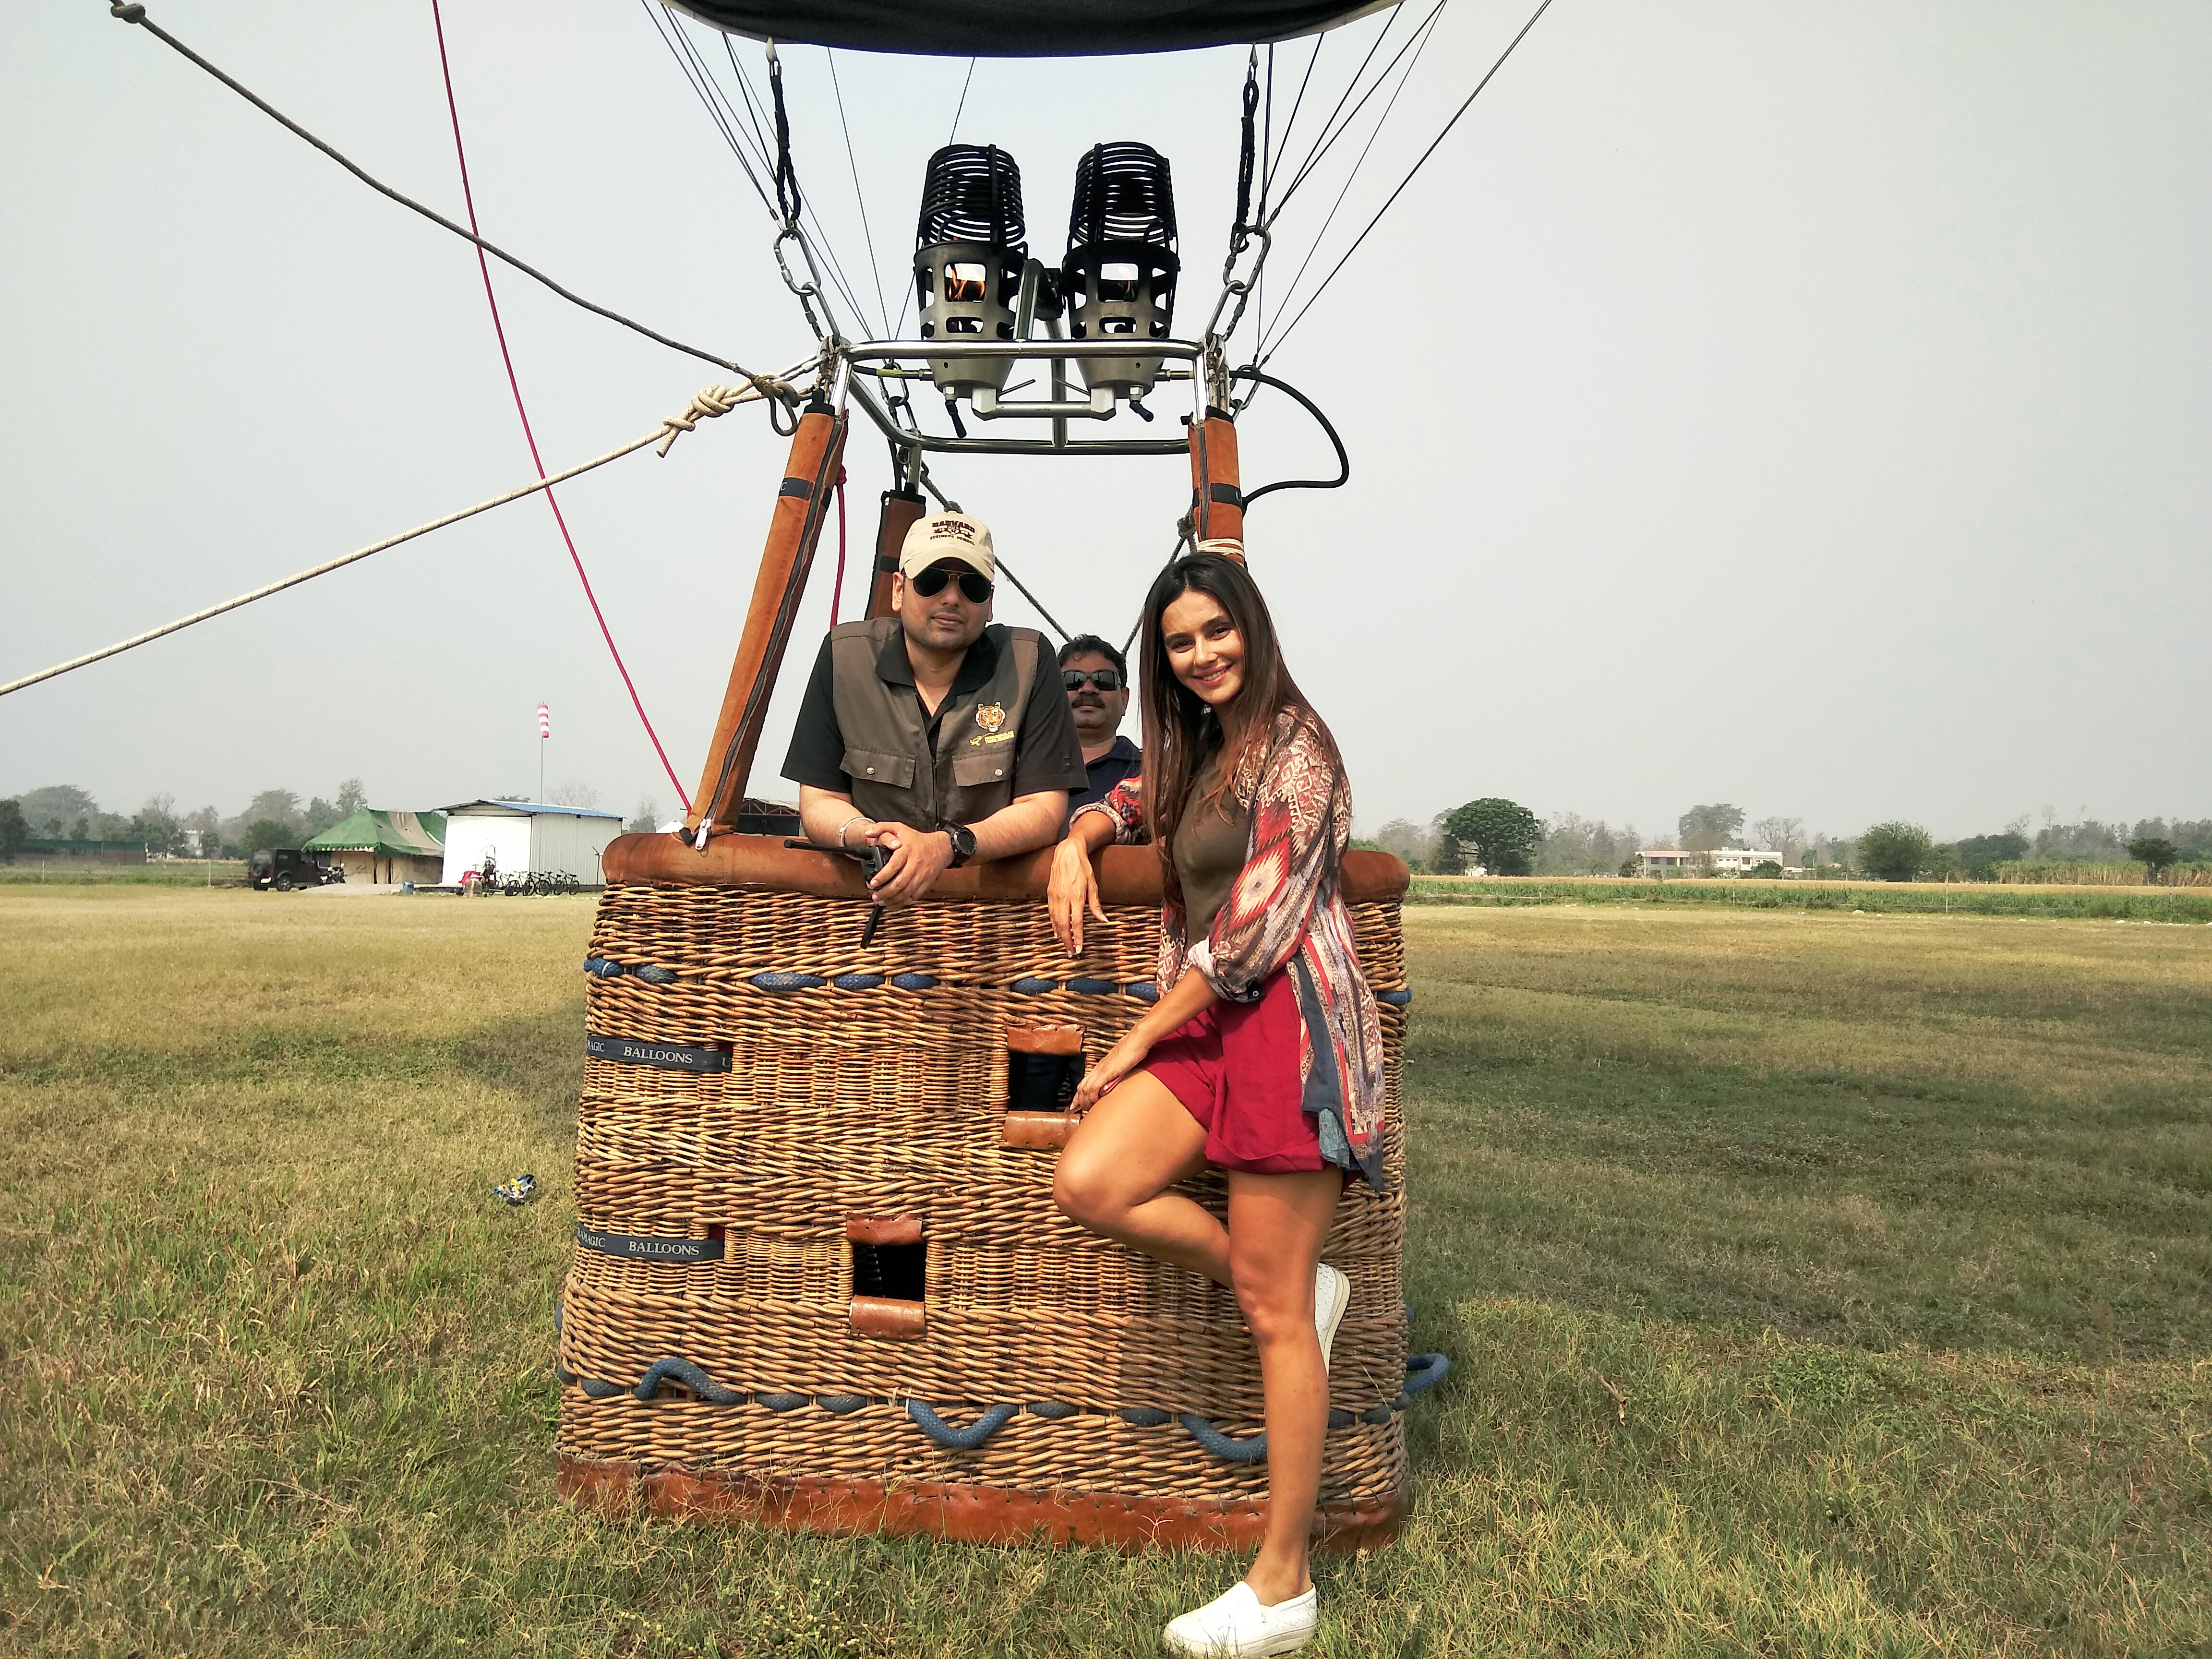 Shibani Dandekar @ Air Safari